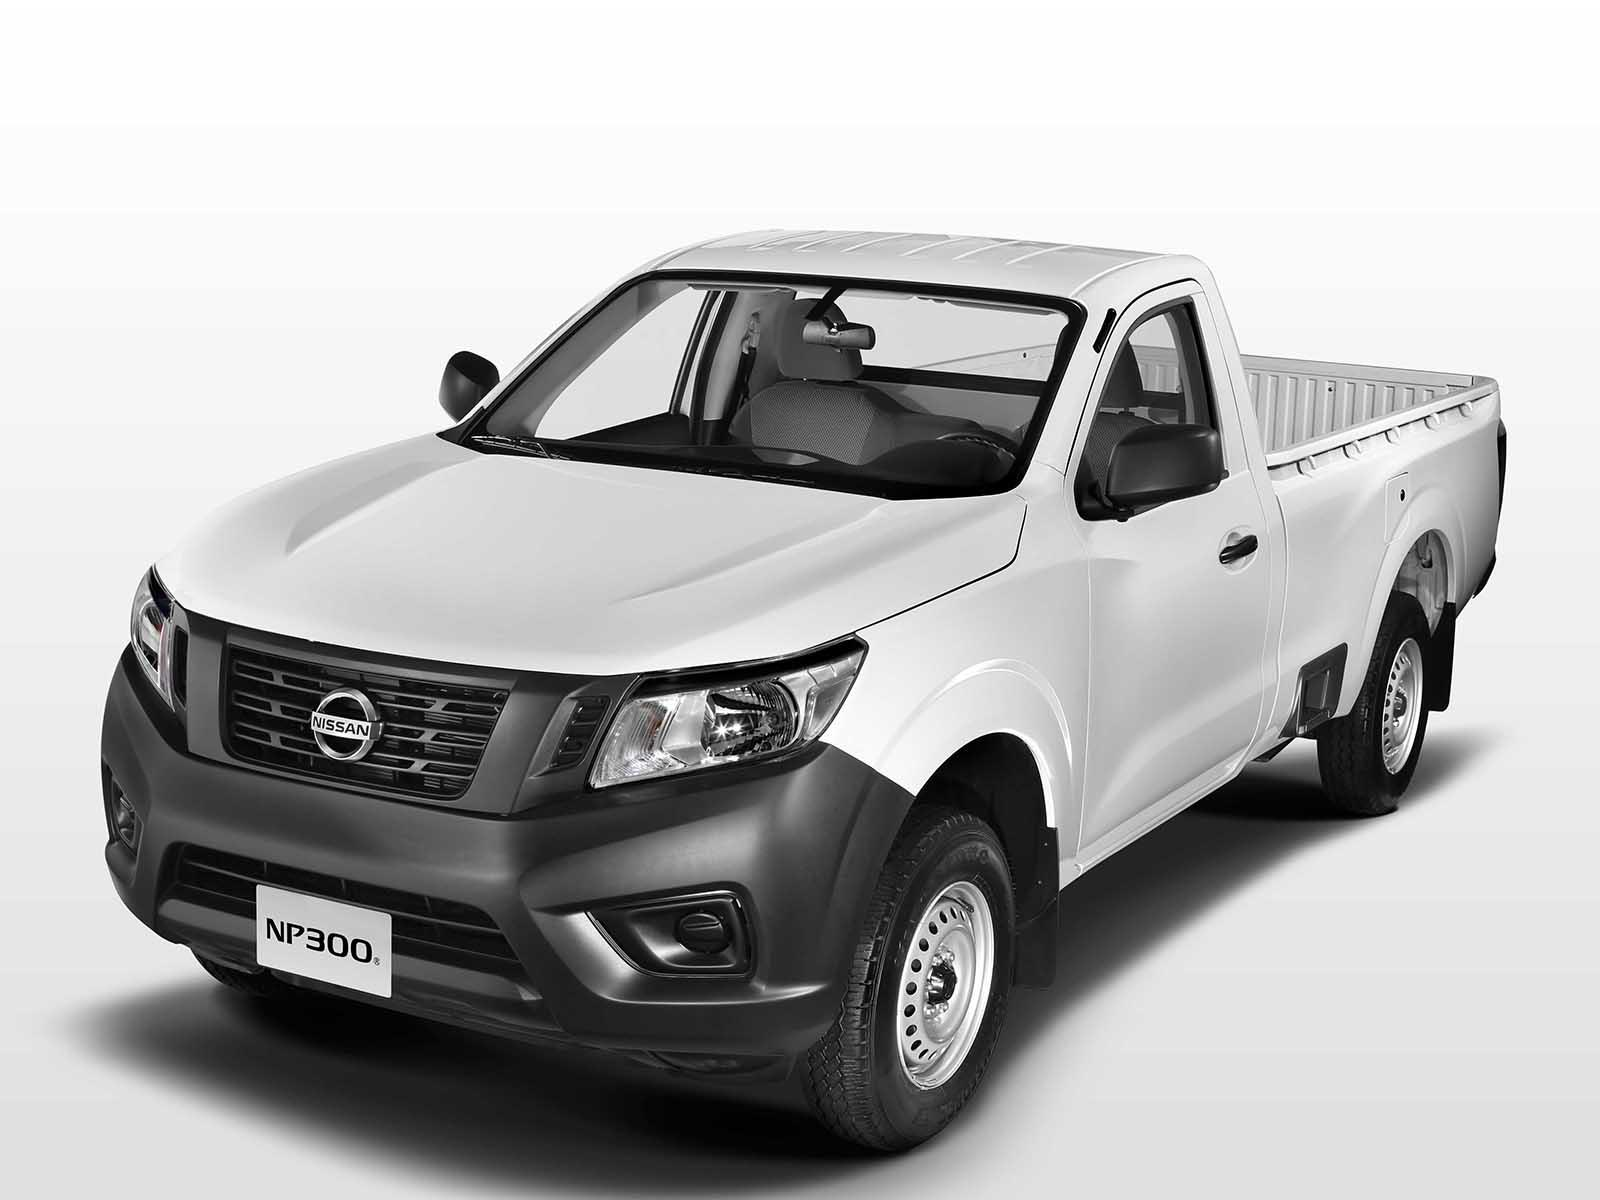 nissan np300 2016 llega a m xico desde 189 600 pesos. Black Bedroom Furniture Sets. Home Design Ideas